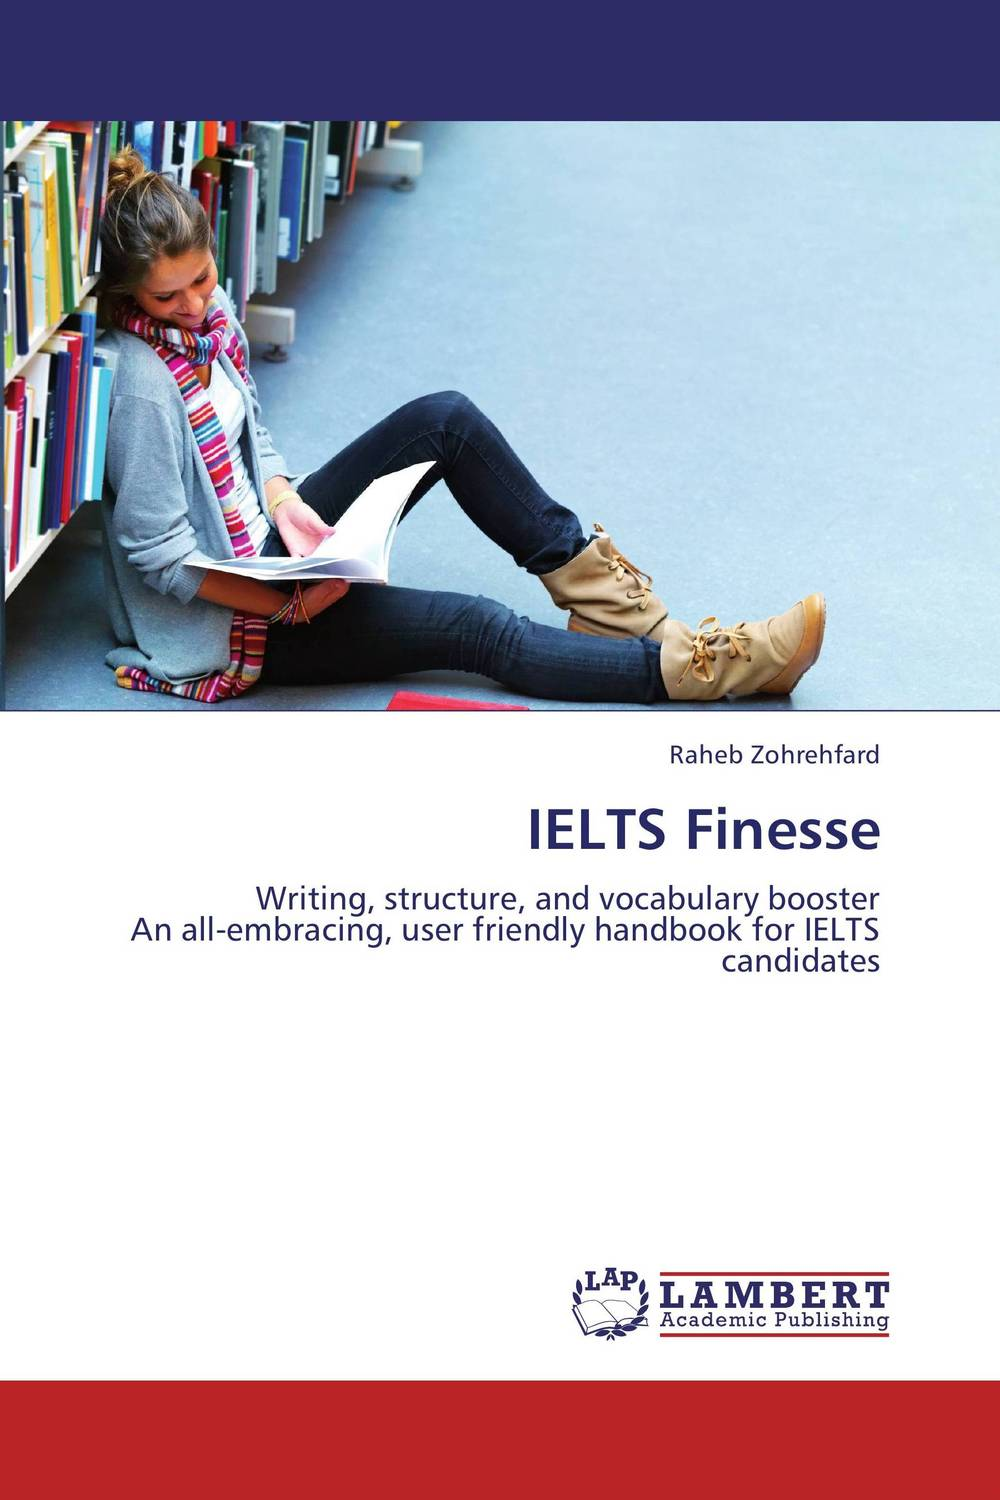 IELTS Finesse the salmon who dared to leap higher